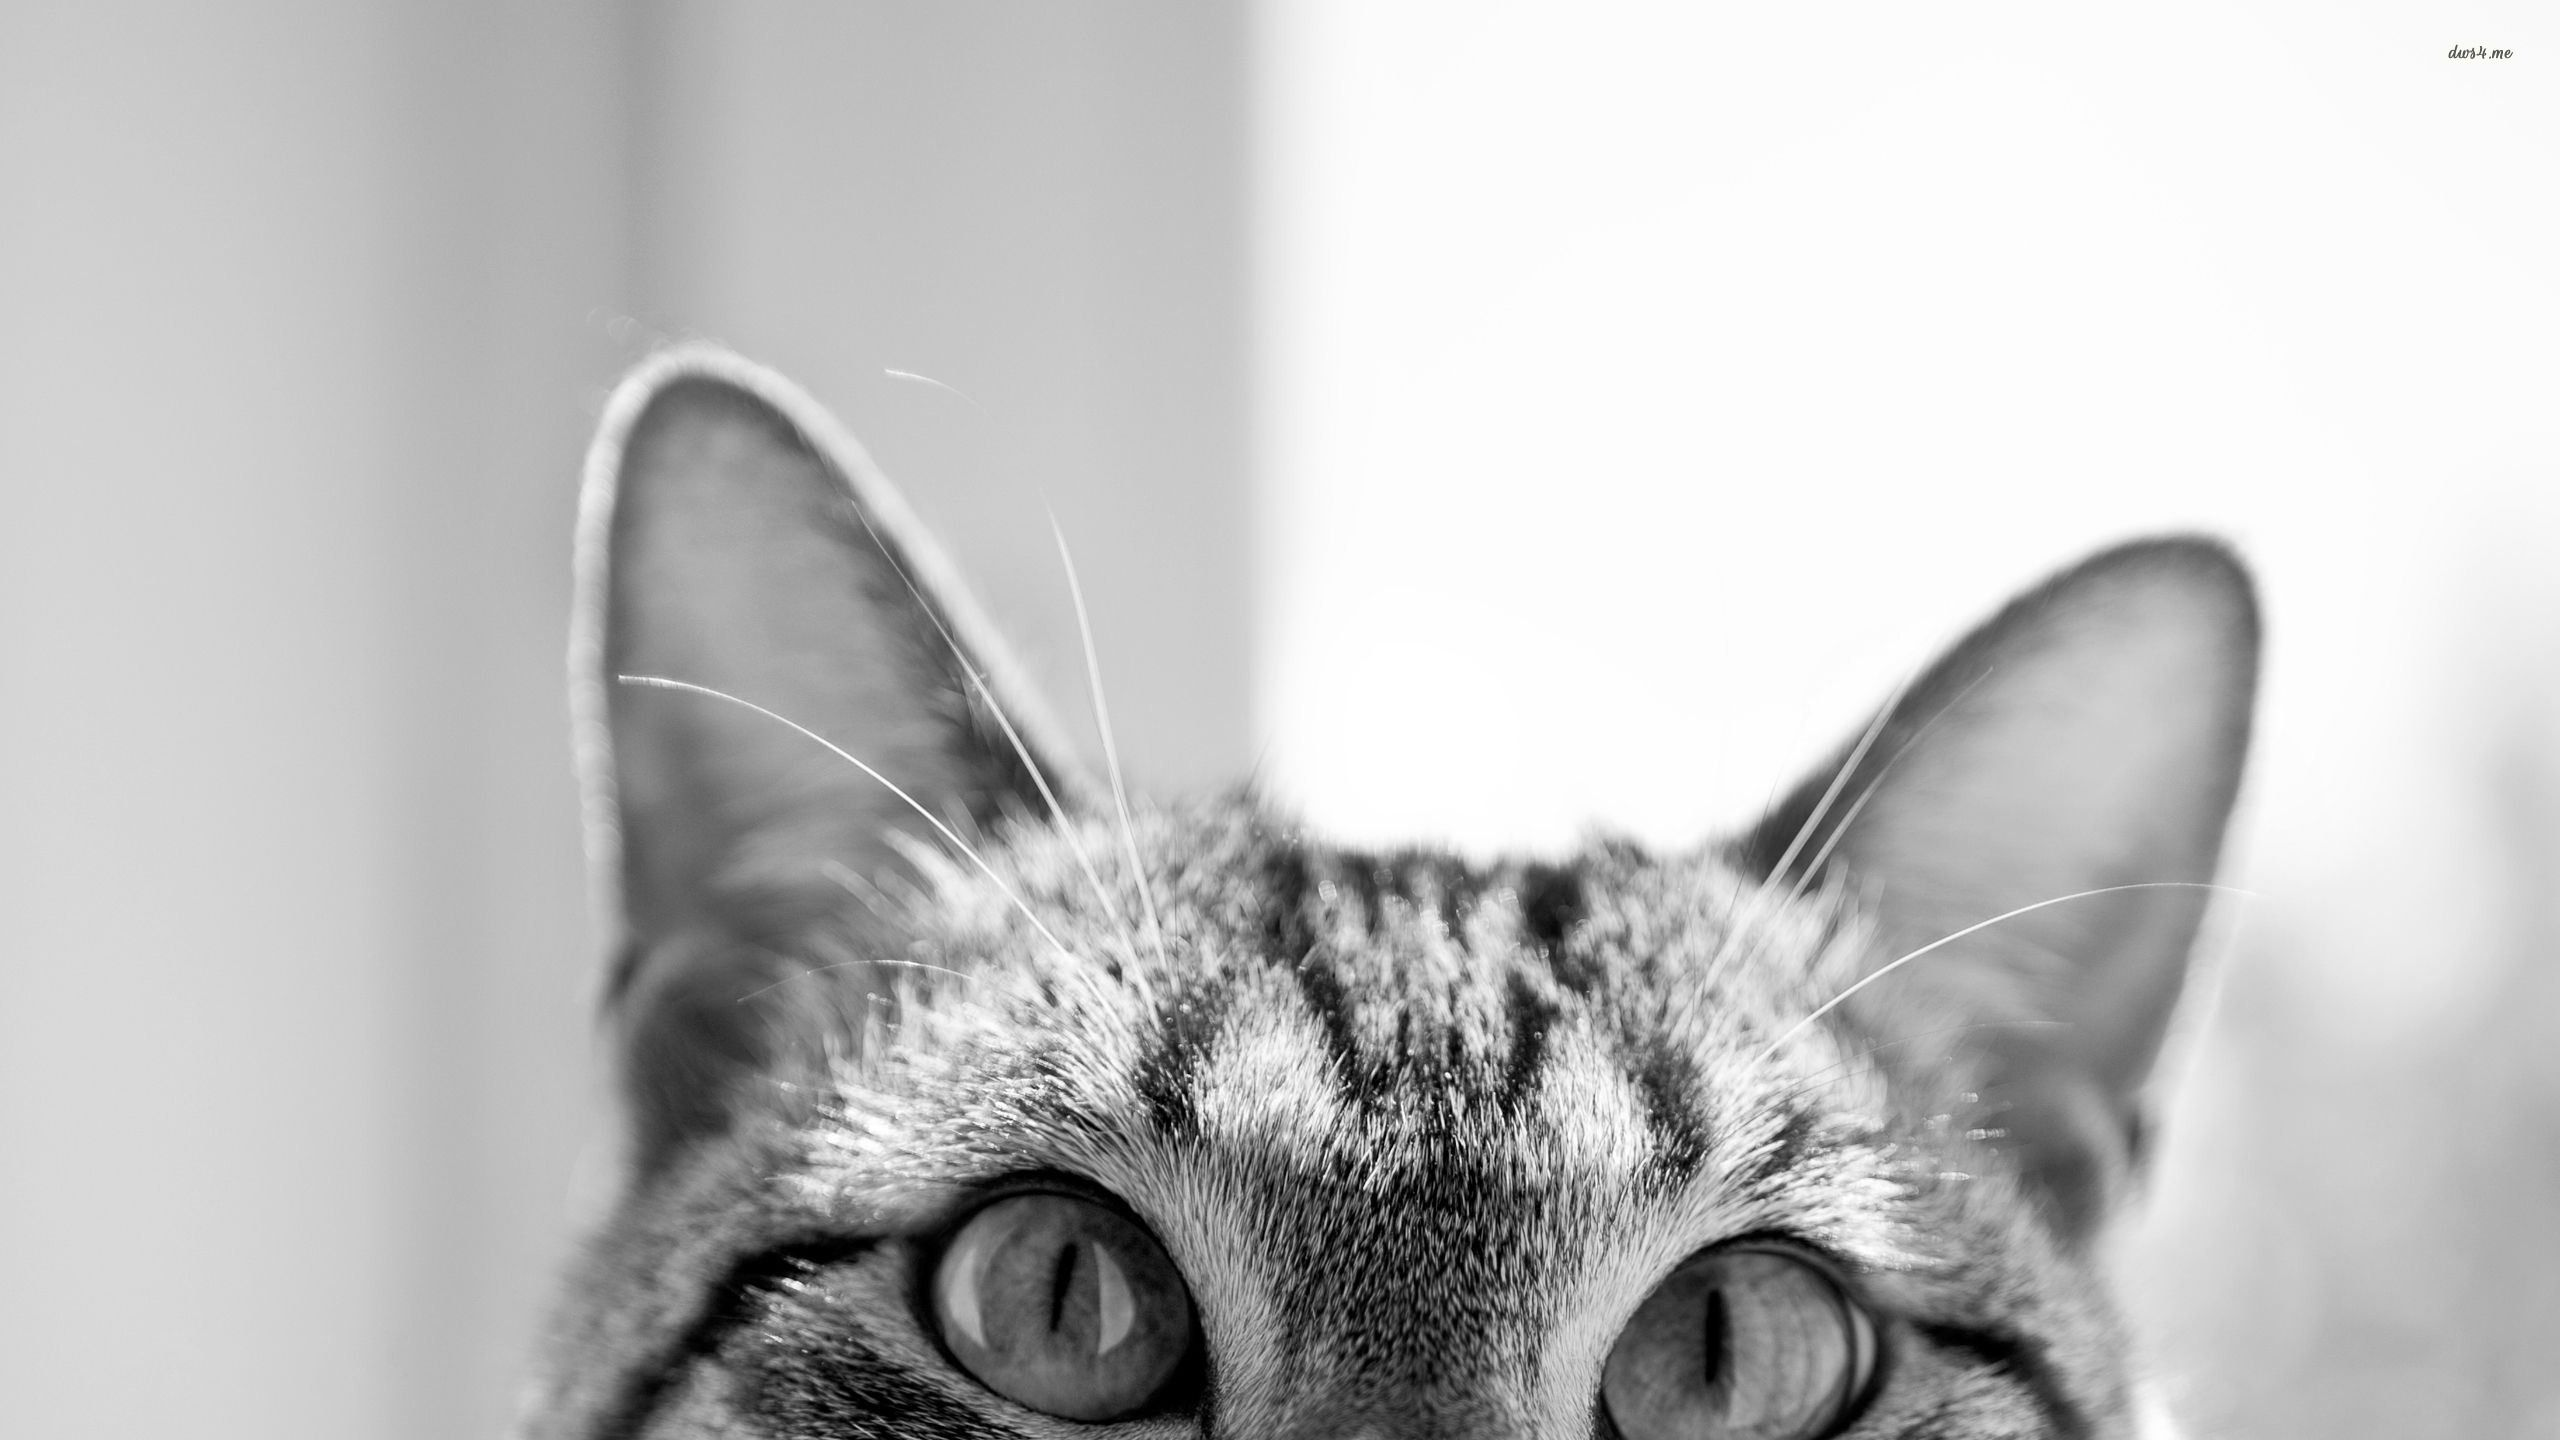 hipster cat tumblr background - photo #10